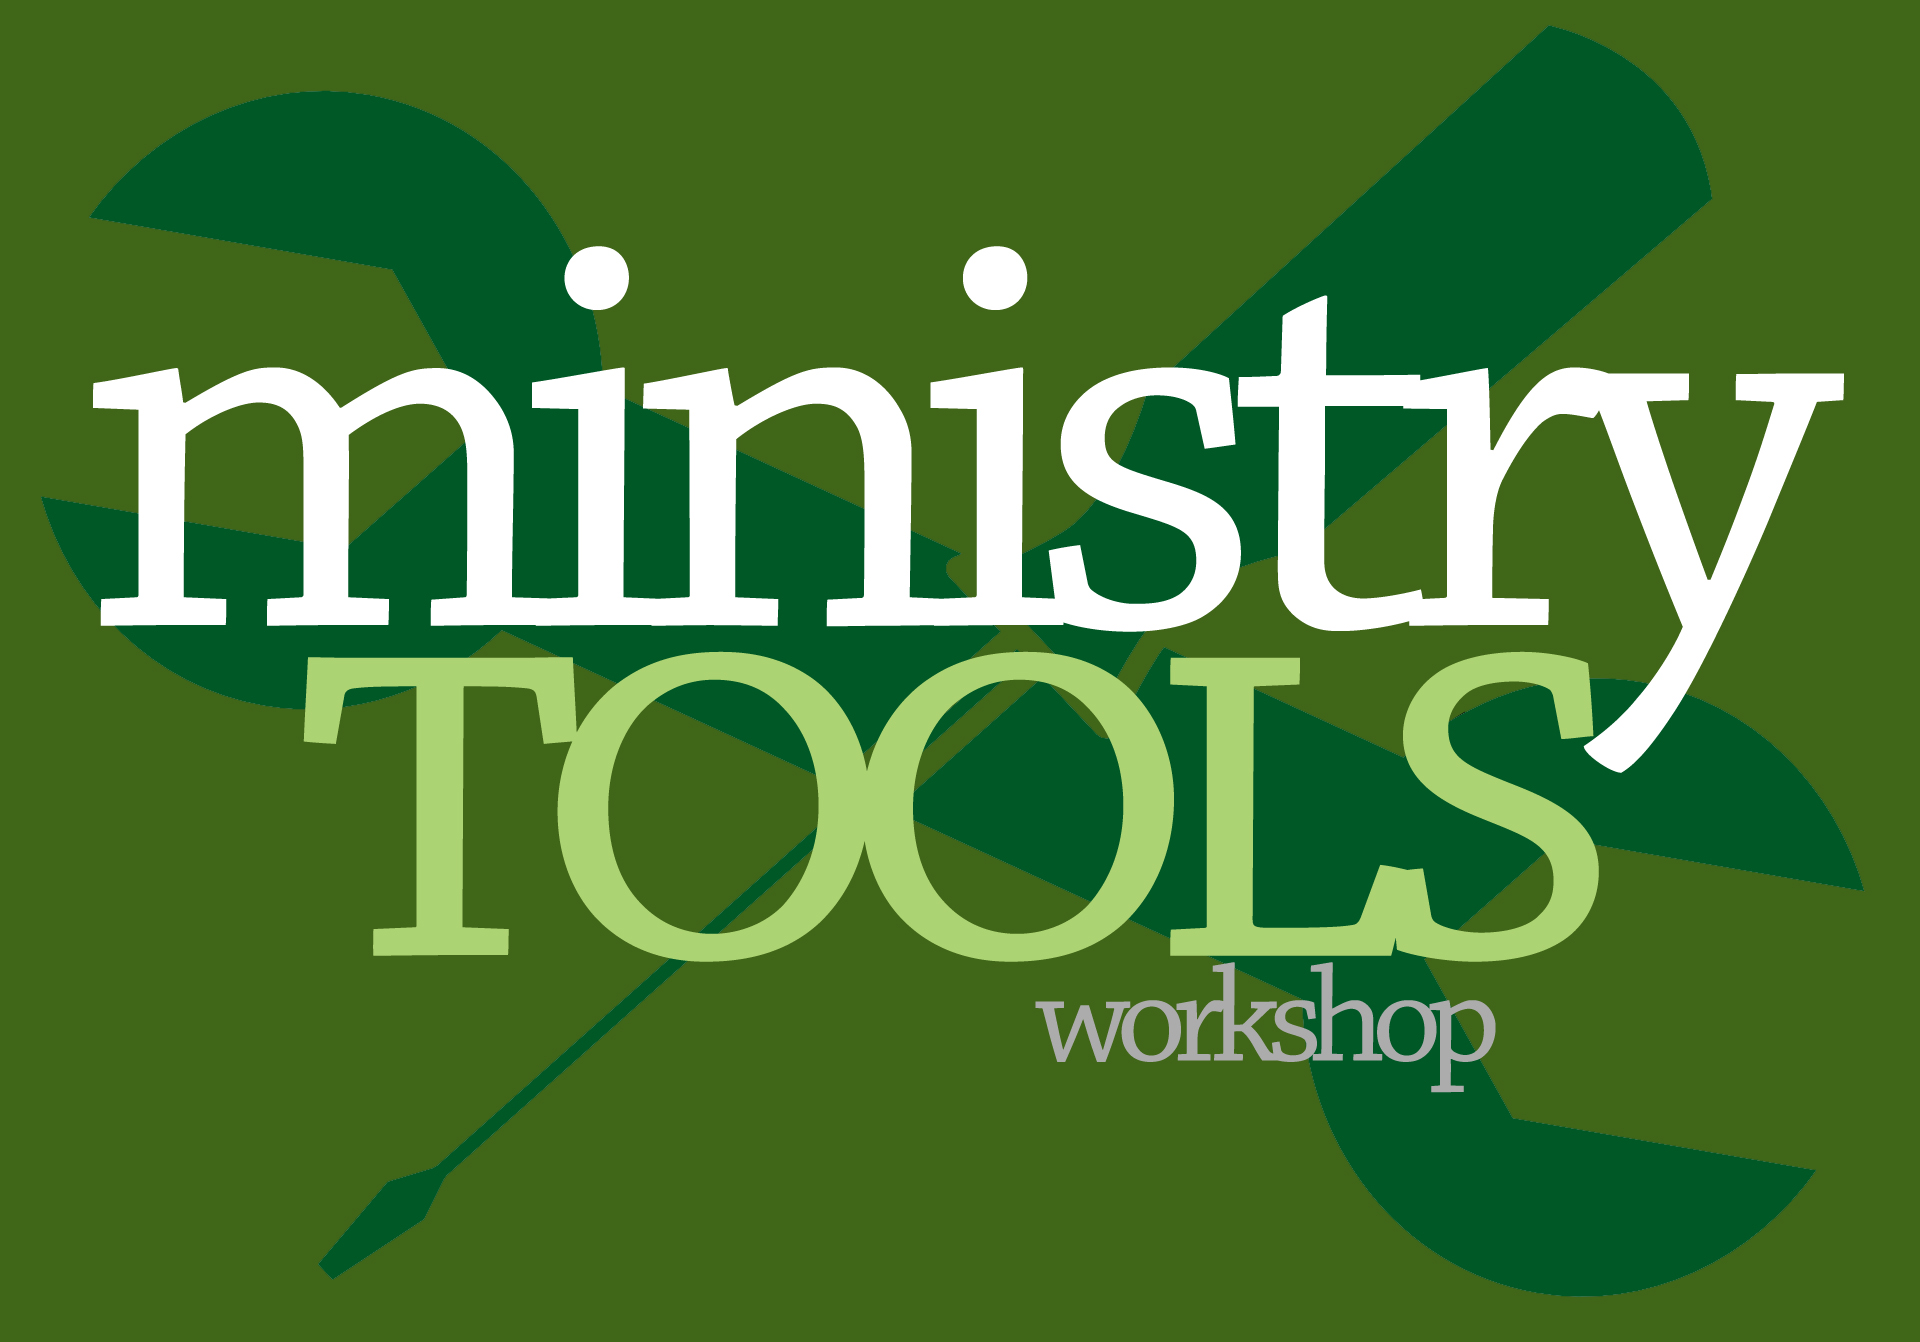 ministrytoolsgraphic